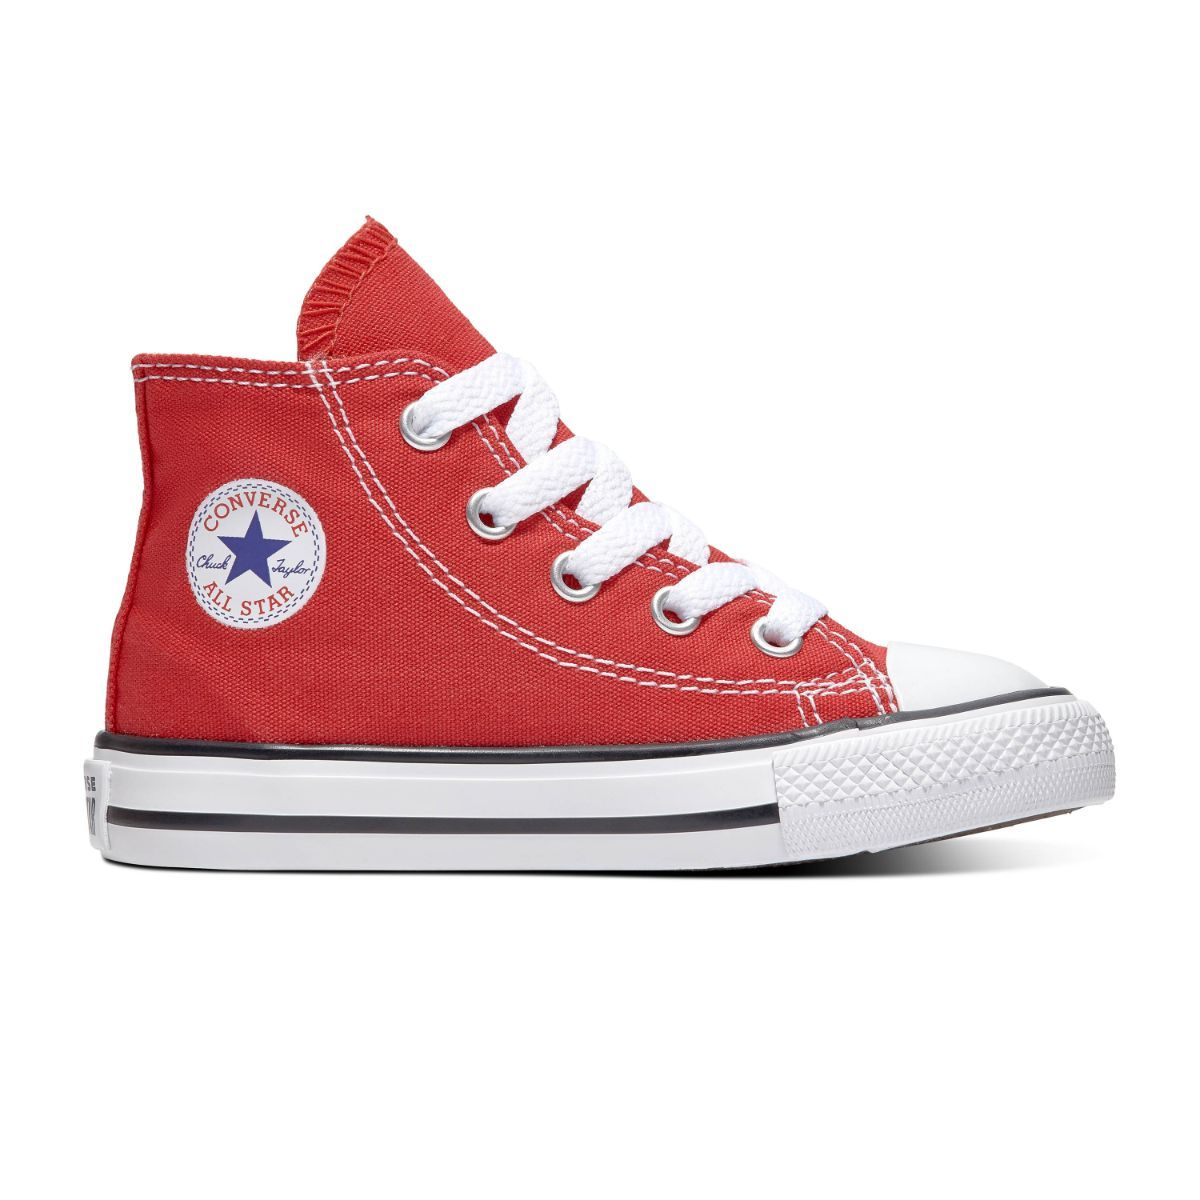 Toddler Chuck Taylor All Star Red High Top